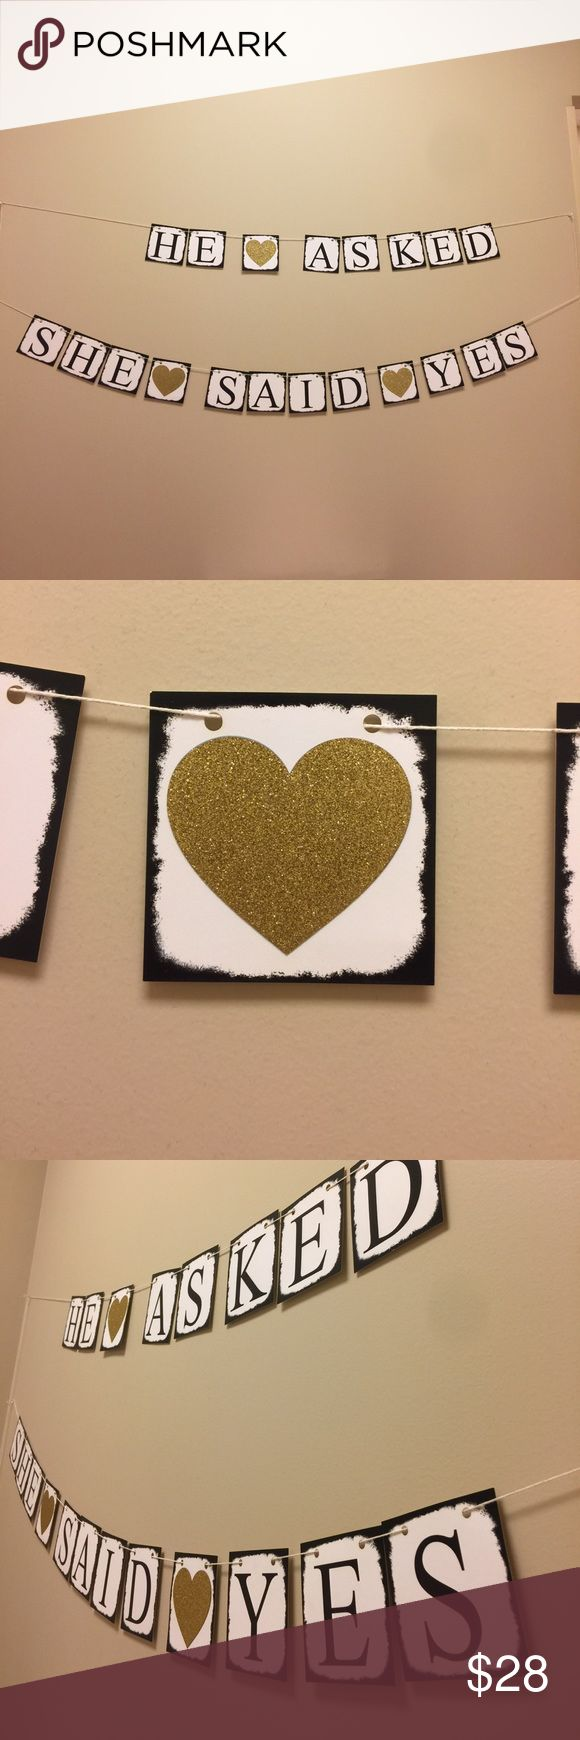 He asked and she said yes banner Use it for an engagement party or a wedding! Banner Details * Cardstock ( sizes : 4 x 4 inches. : White * Lettering : Black * Heart : Gold Glitter * Twine : White * Antiqued Edges : Black wedding decor Other